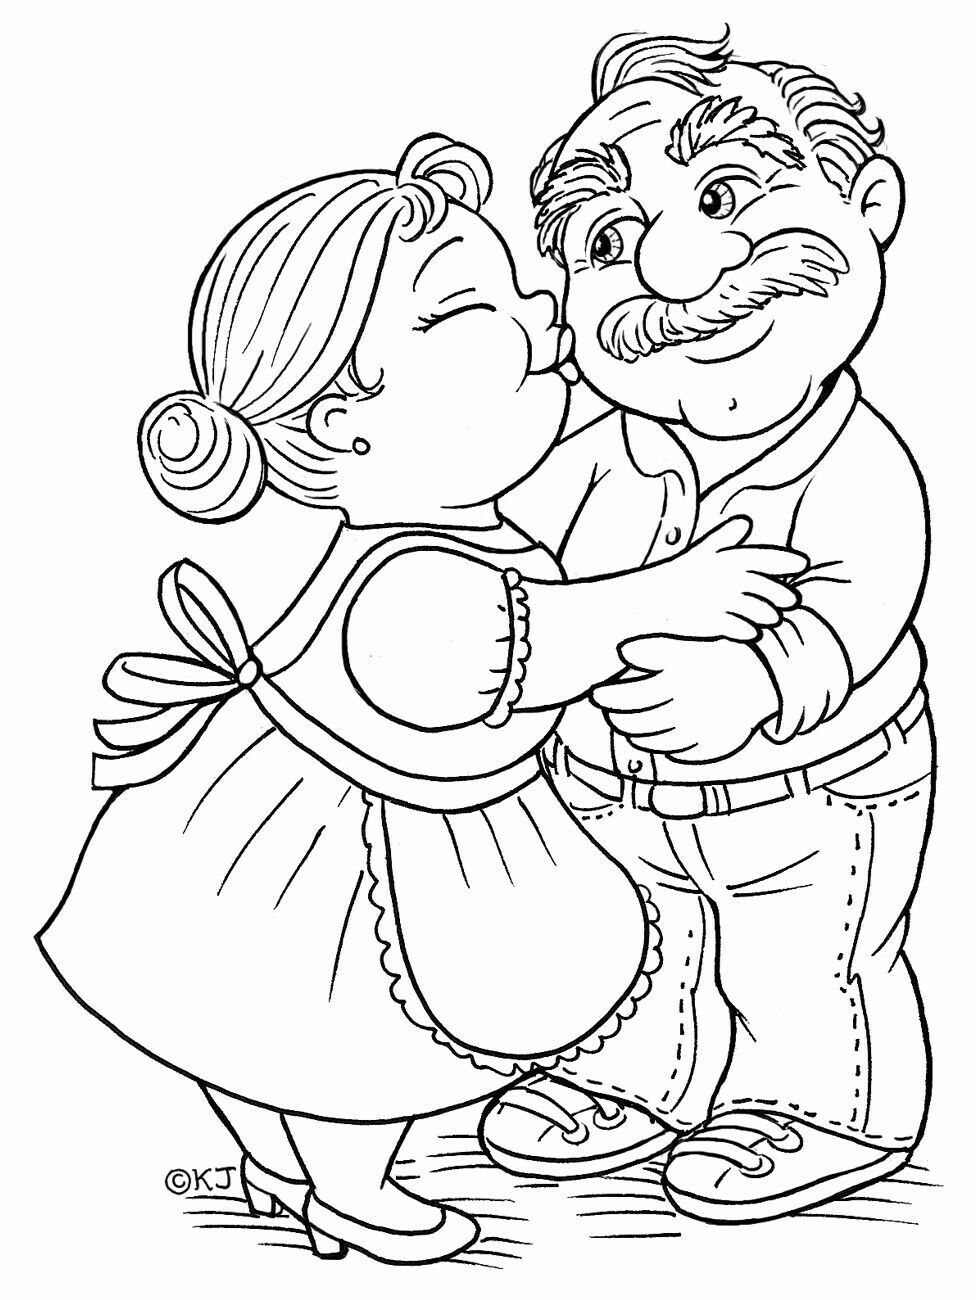 Pin by Laura on Colouring pages for Adults Coloring